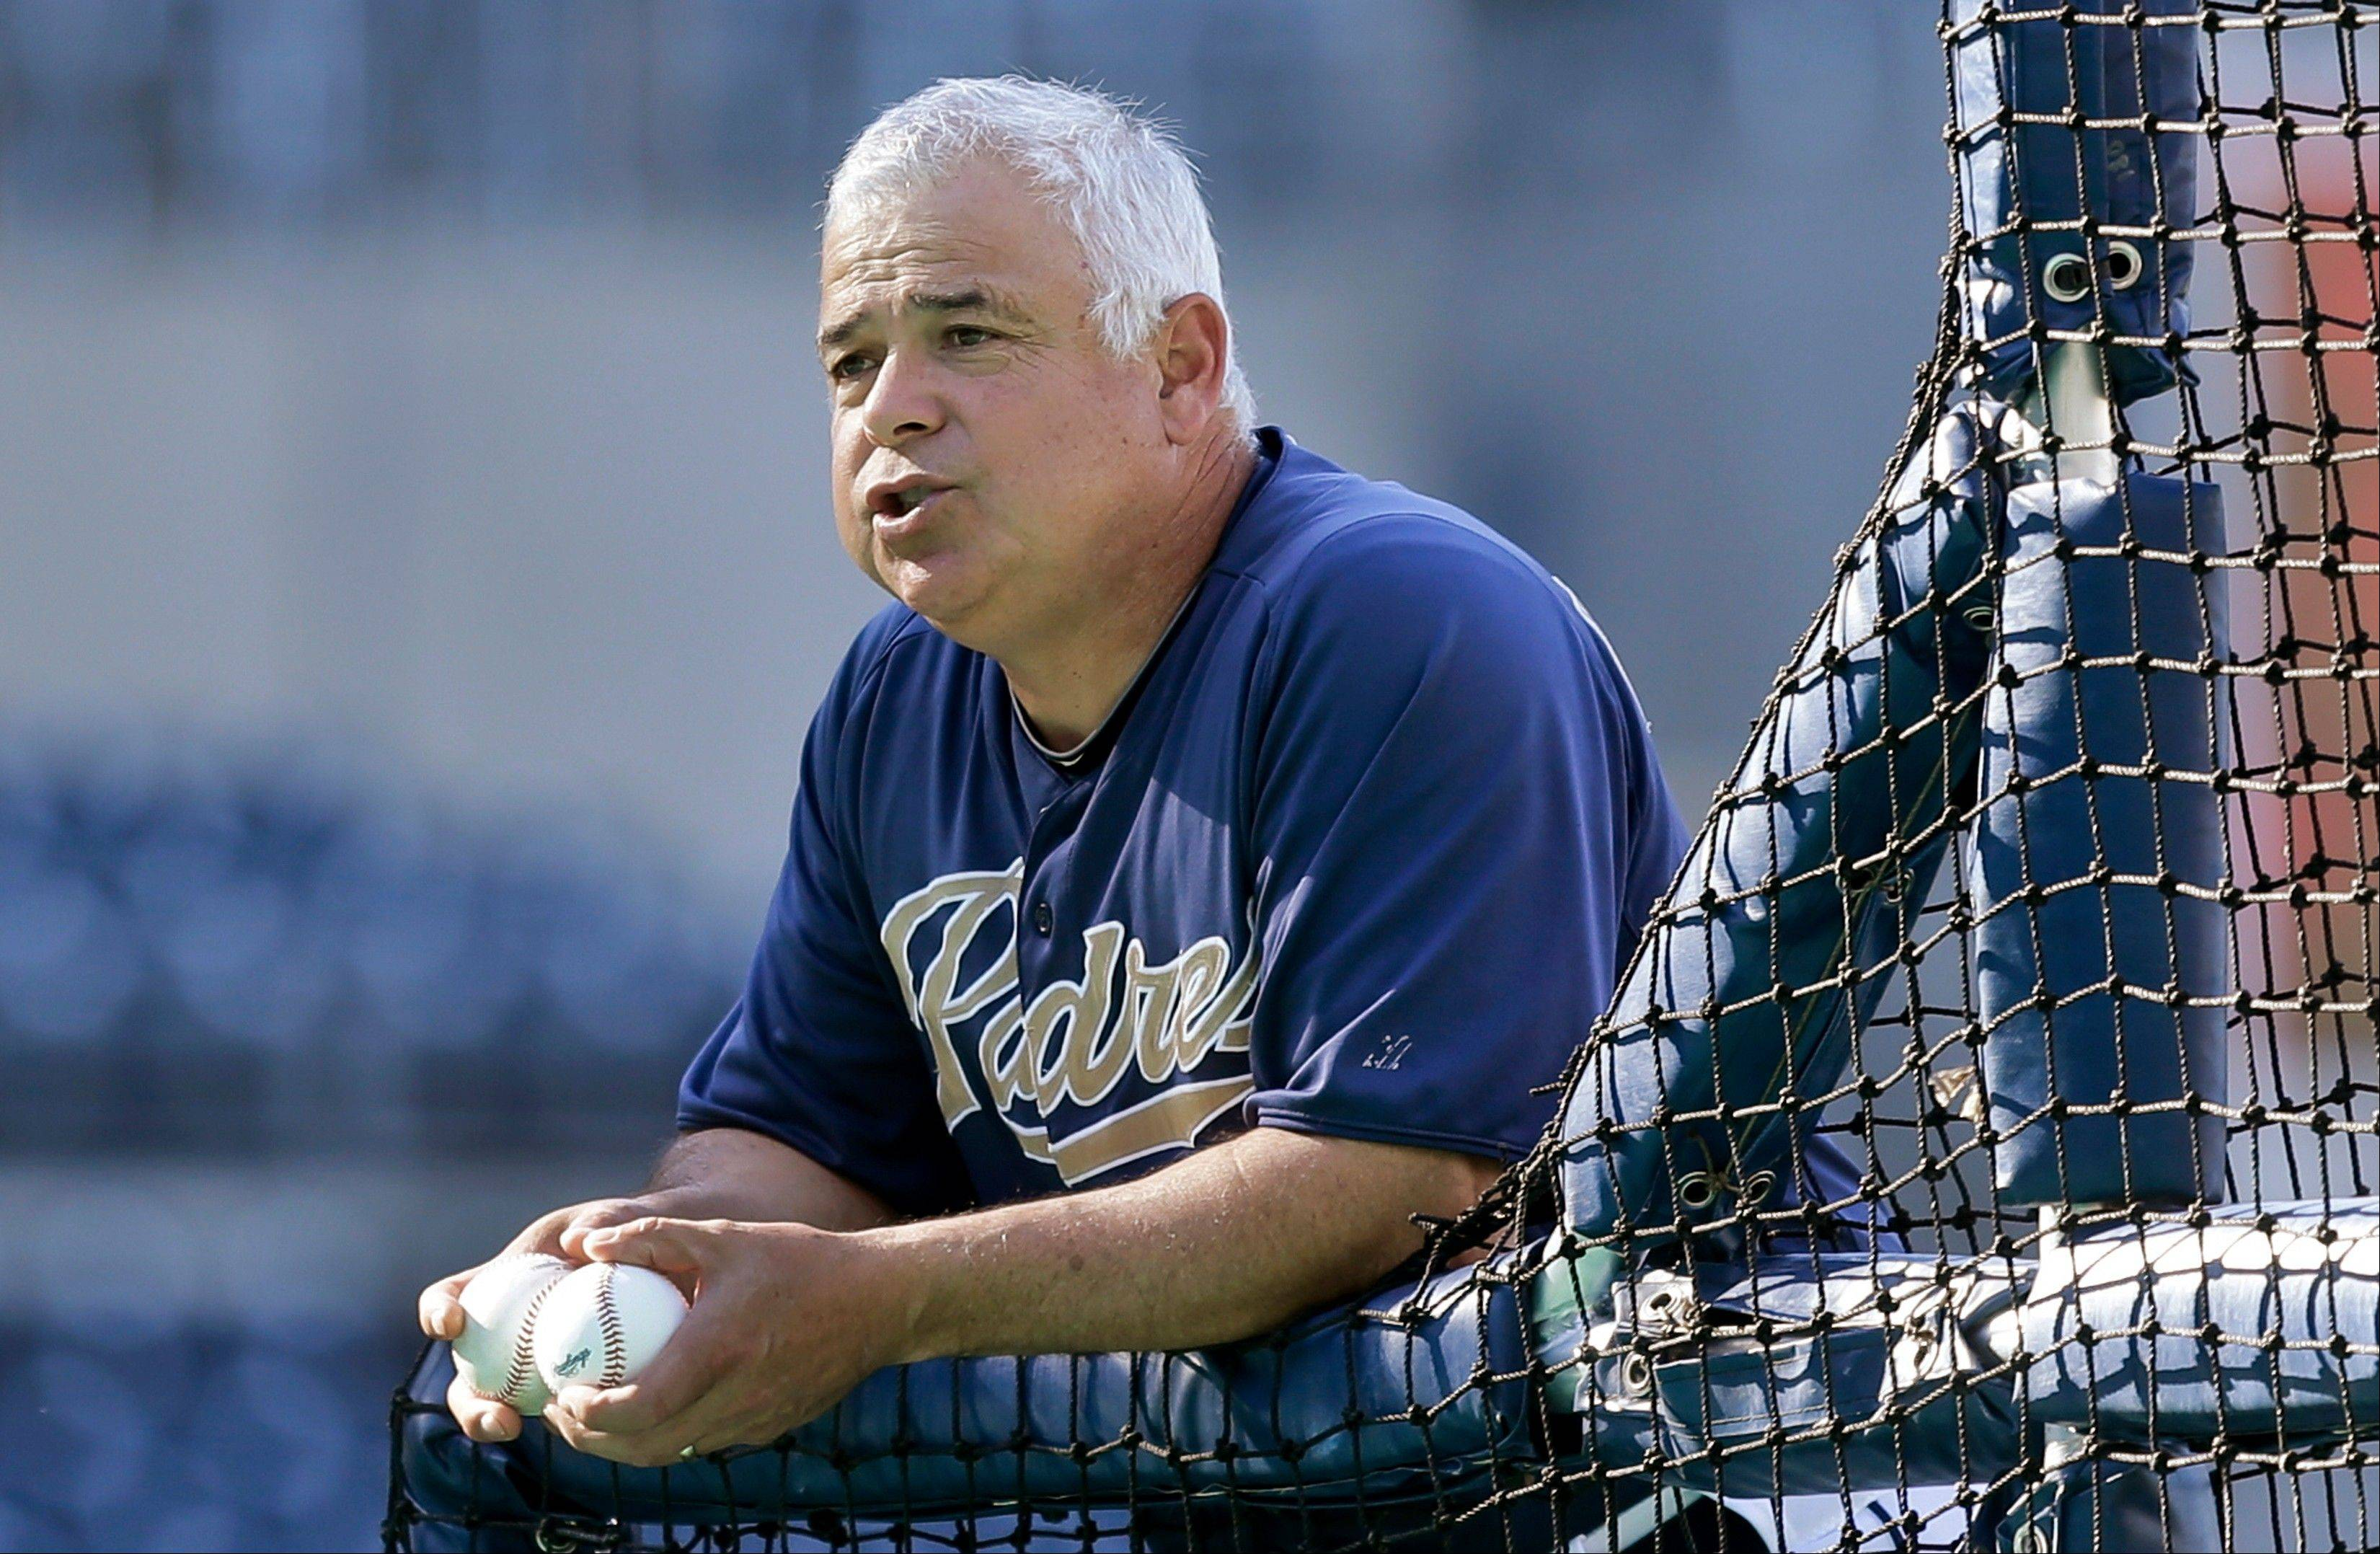 The Cubs hired Rick Renteria as their new manager. Renteria received a three-year contract.